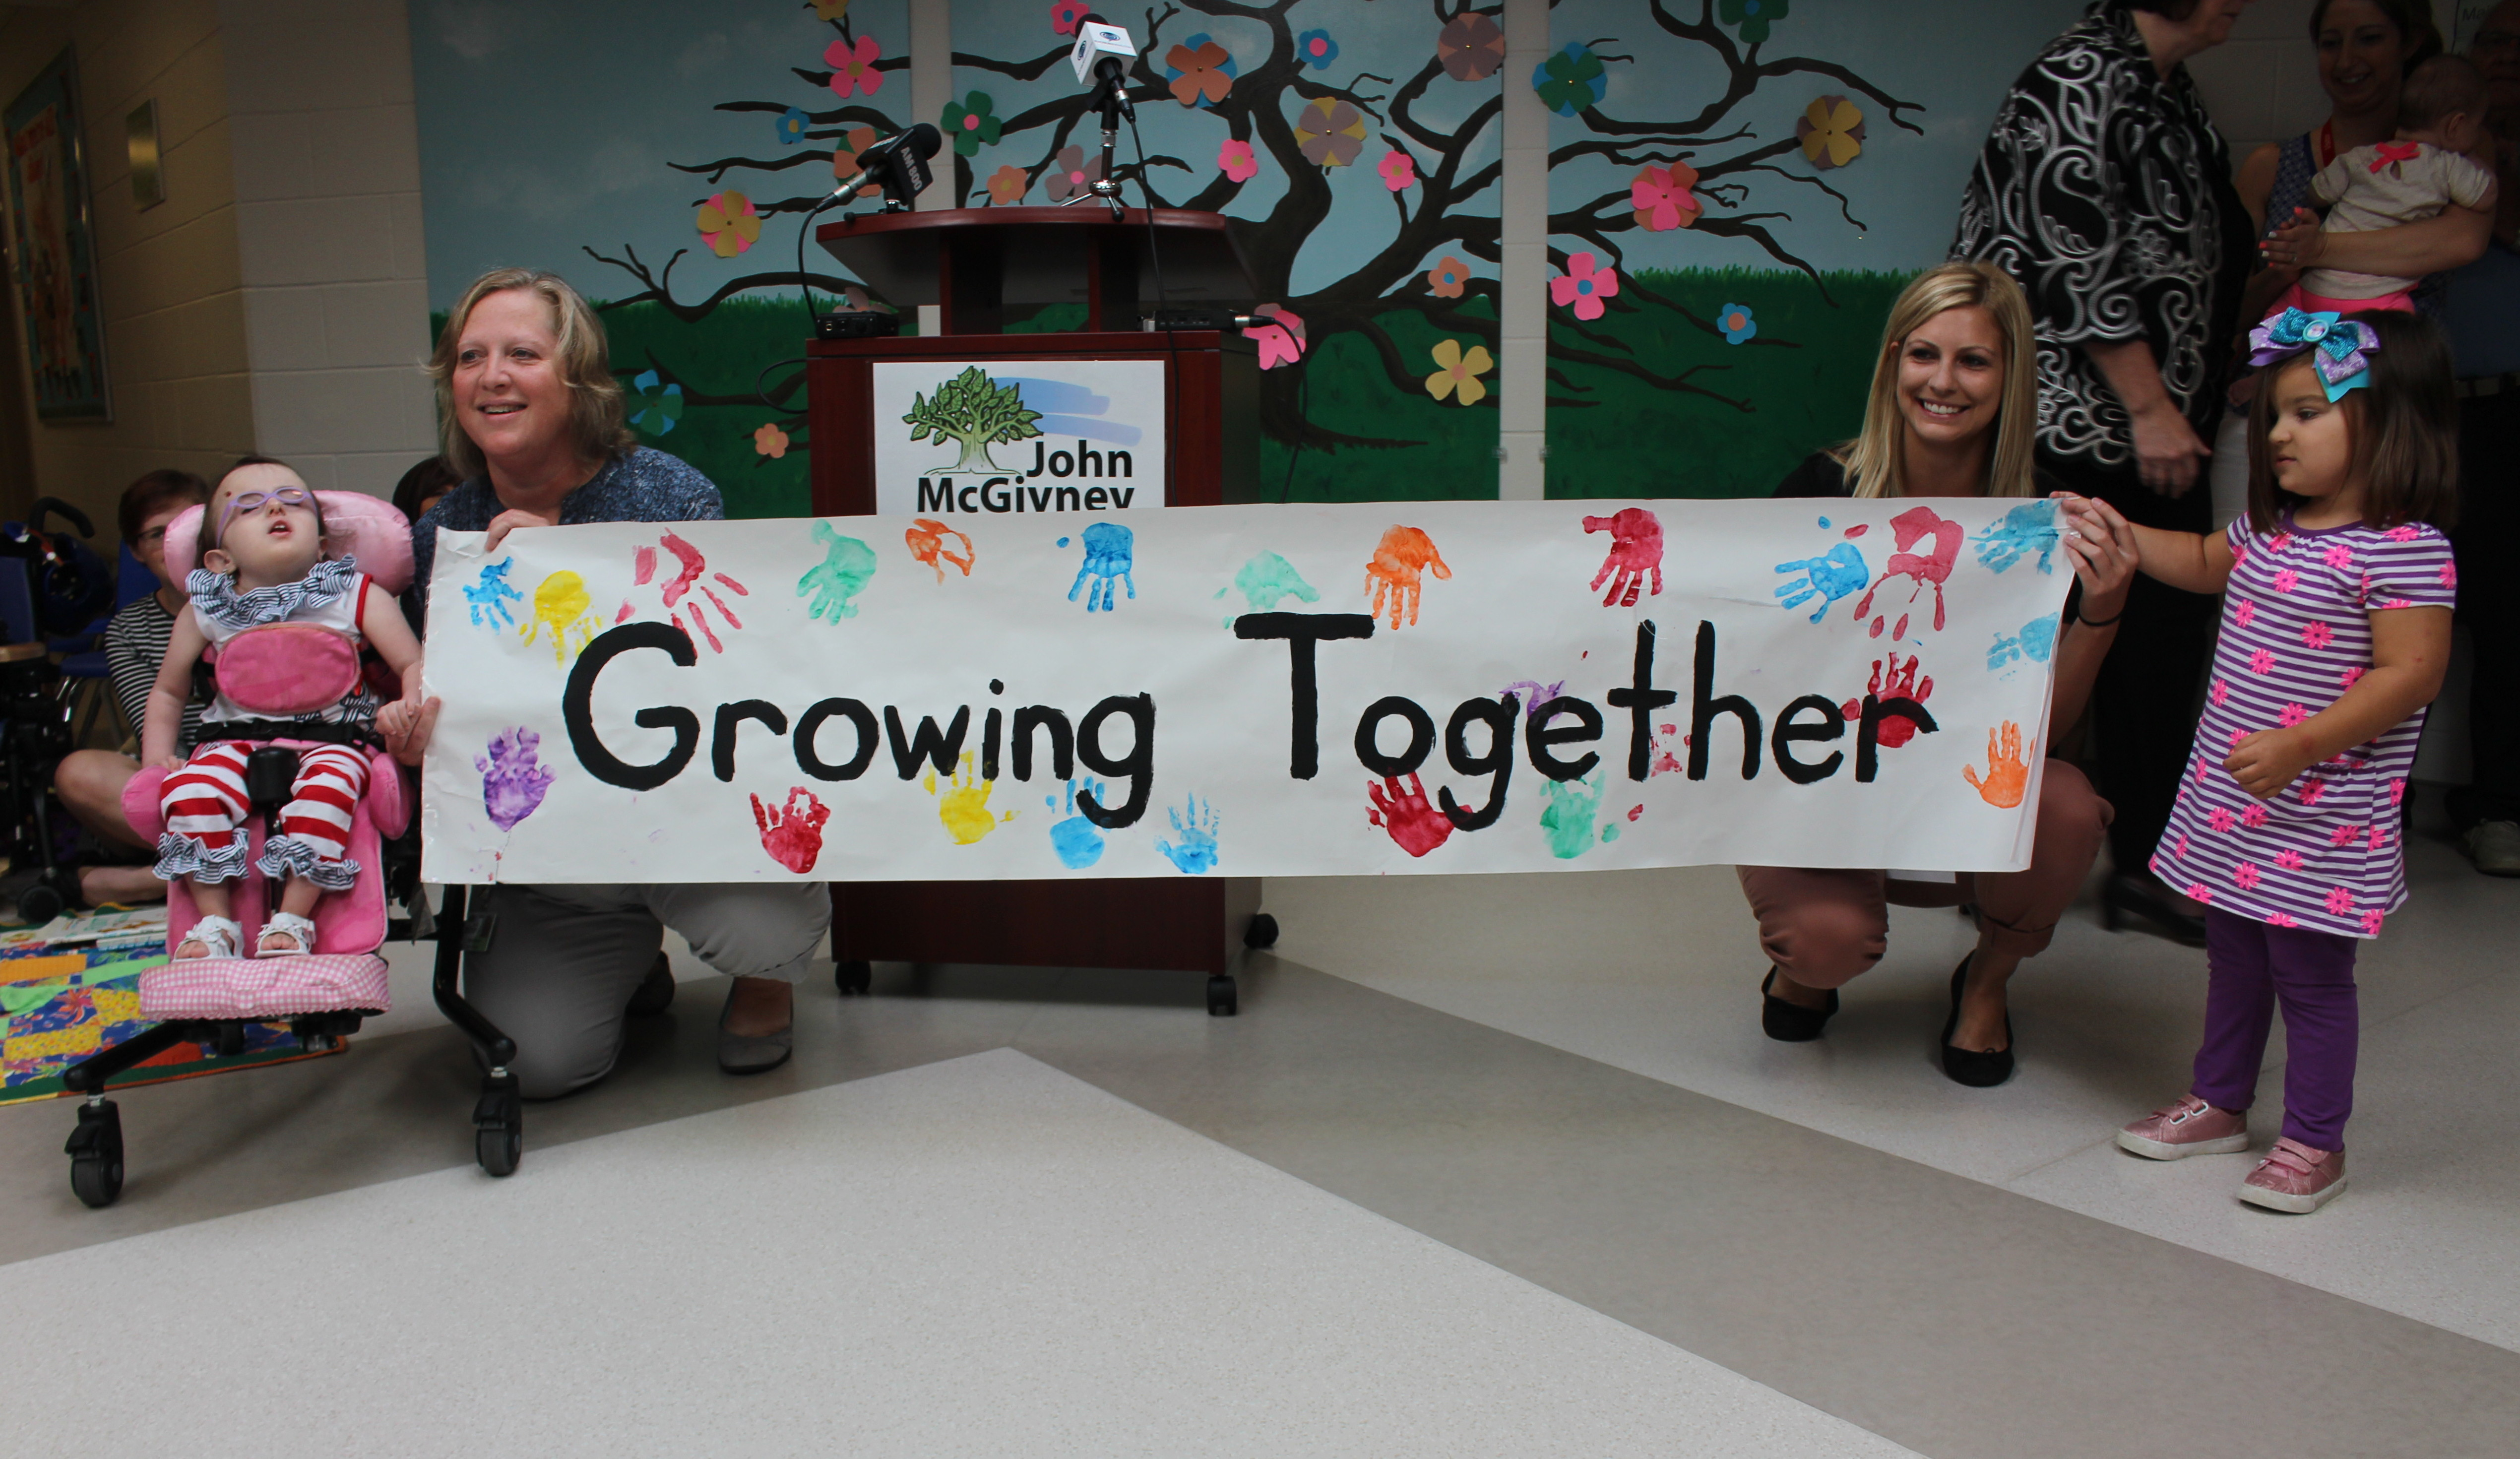 Staff members and kids at the John McGivney Children's Centre in Windsor help launch a newly redesigned program, August 20, 2015. (Photo by Mike Vlasveld)